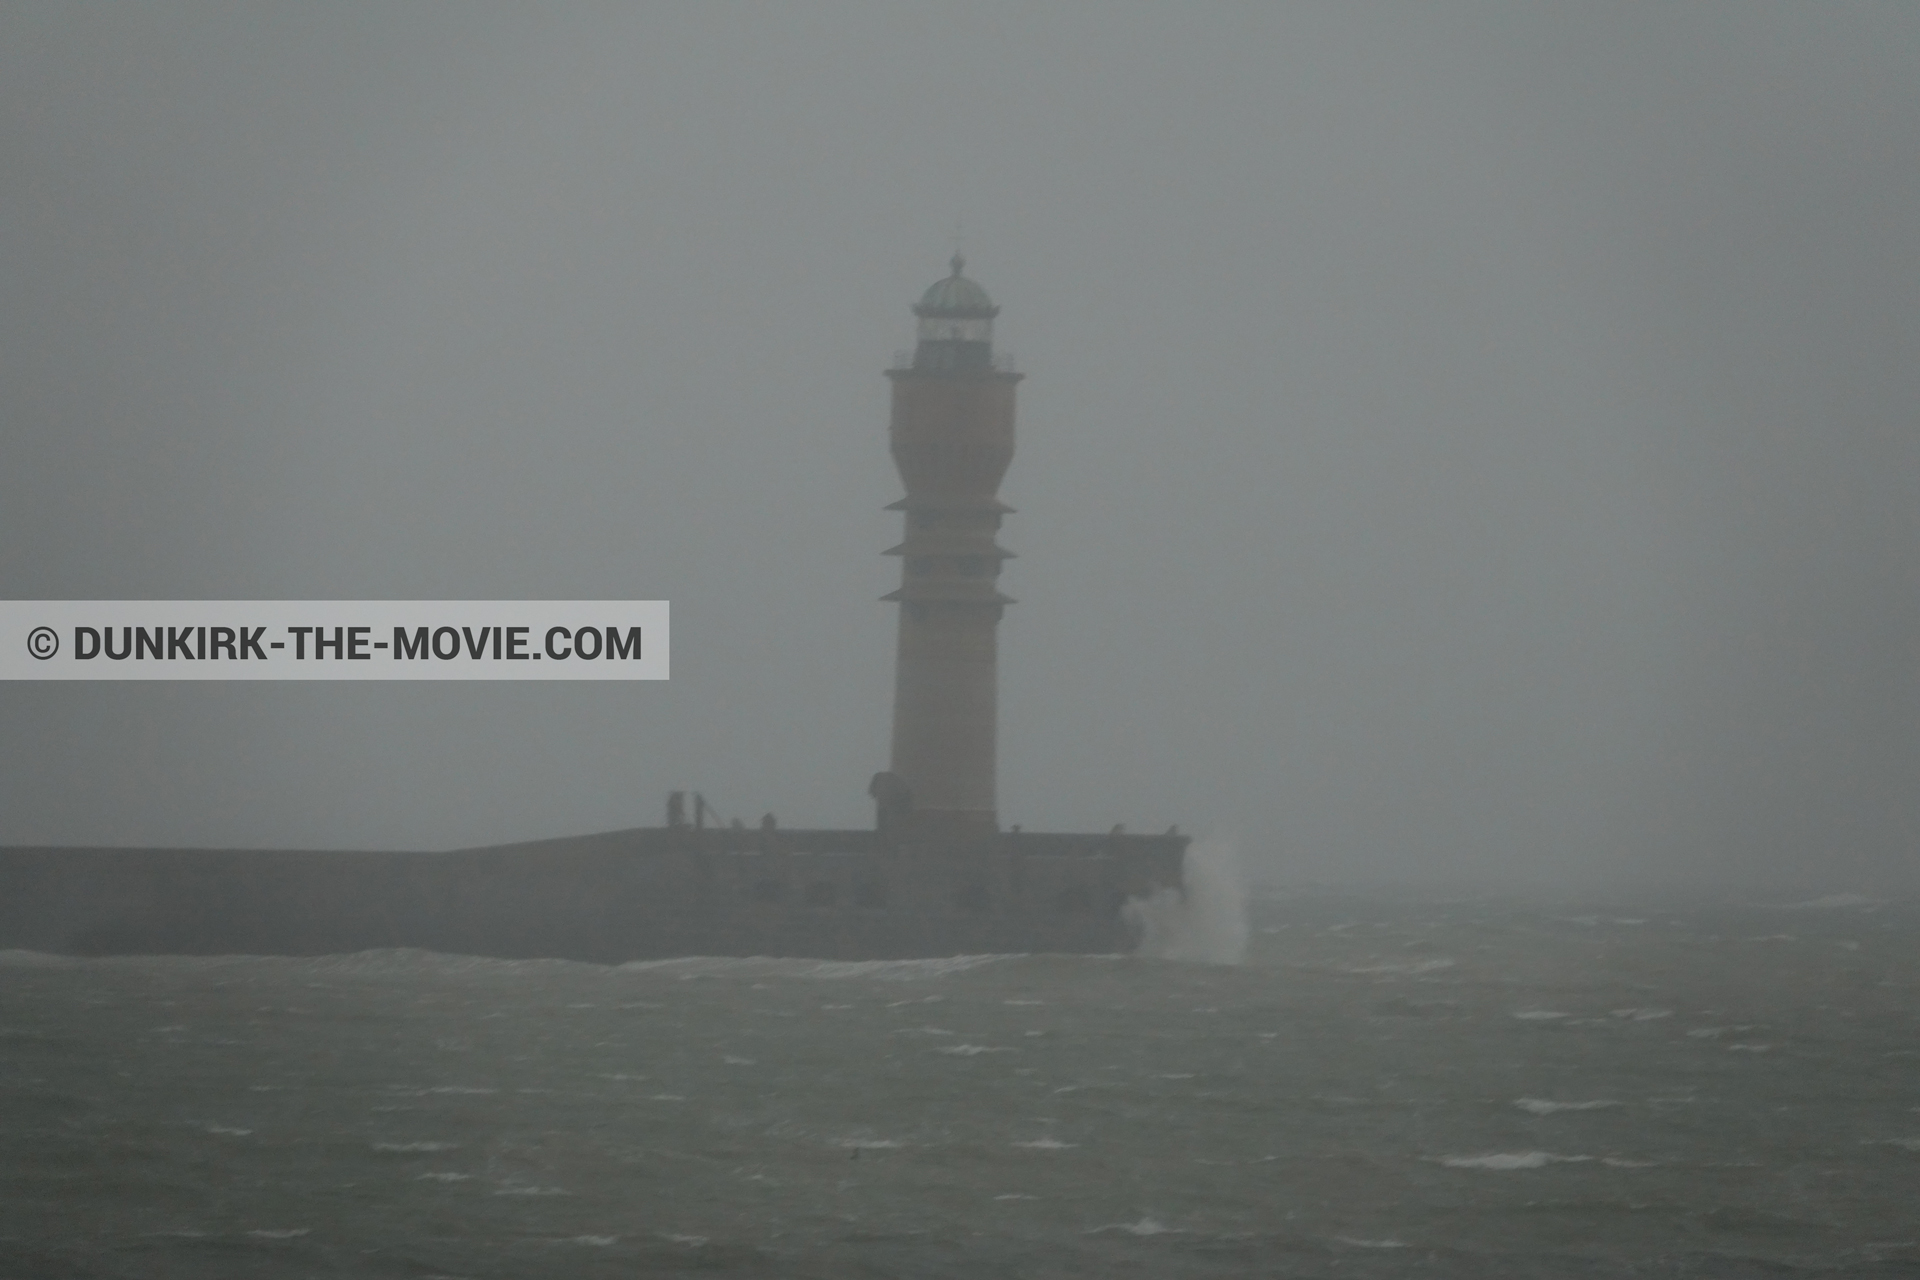 Picture with grey sky, rough sea, St Pol sur Mer lighthouse,  from behind the scene of the Dunkirk movie by Nolan